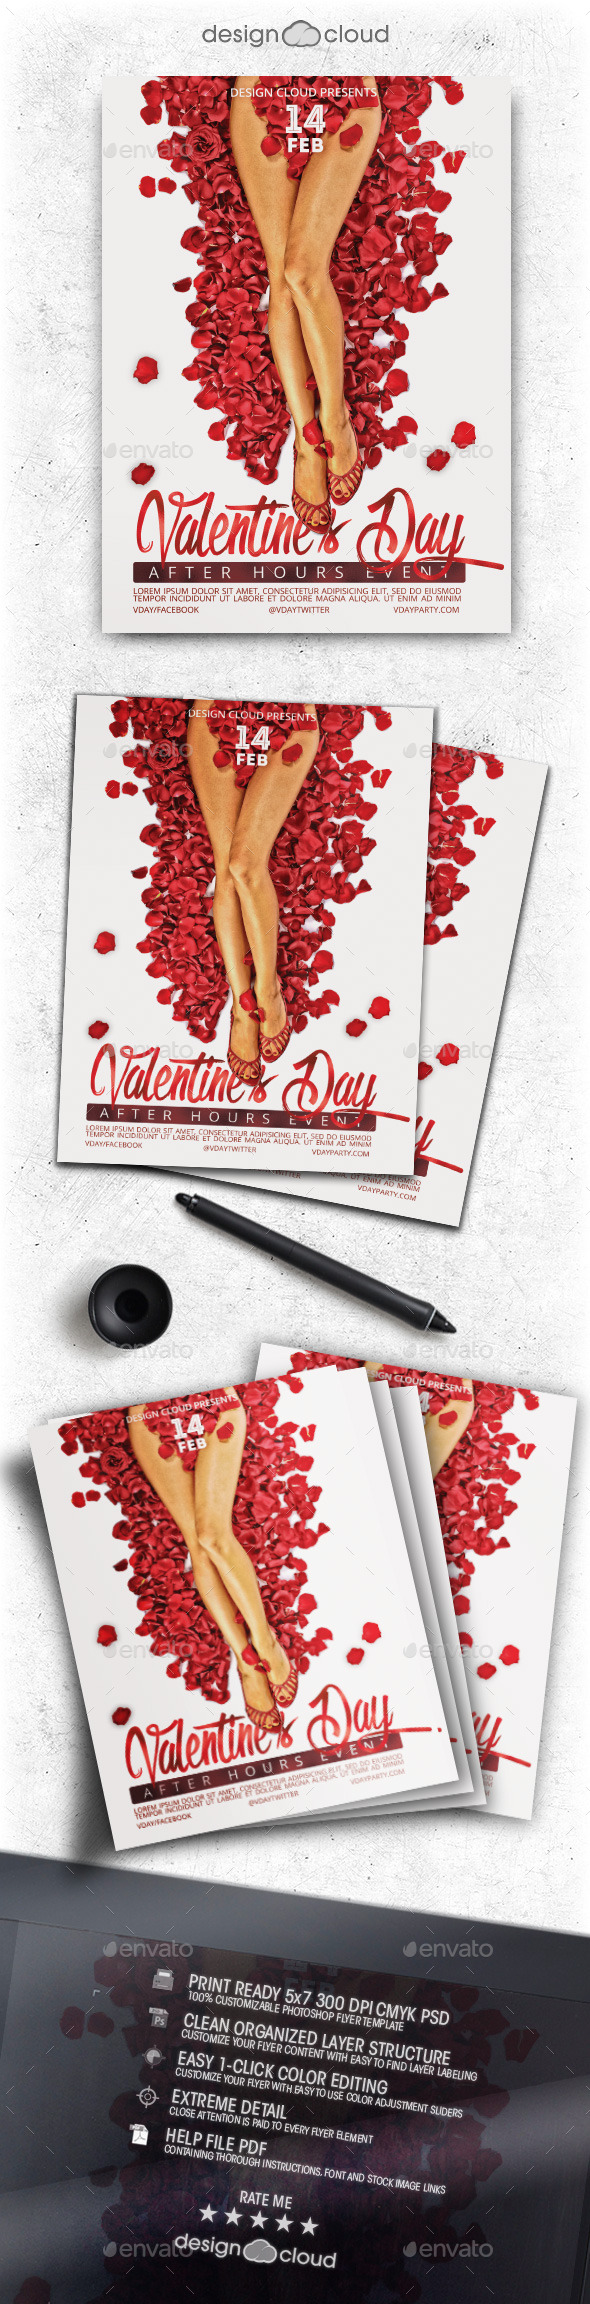 Valentine After Hours Event Flyer Template - Holidays Events